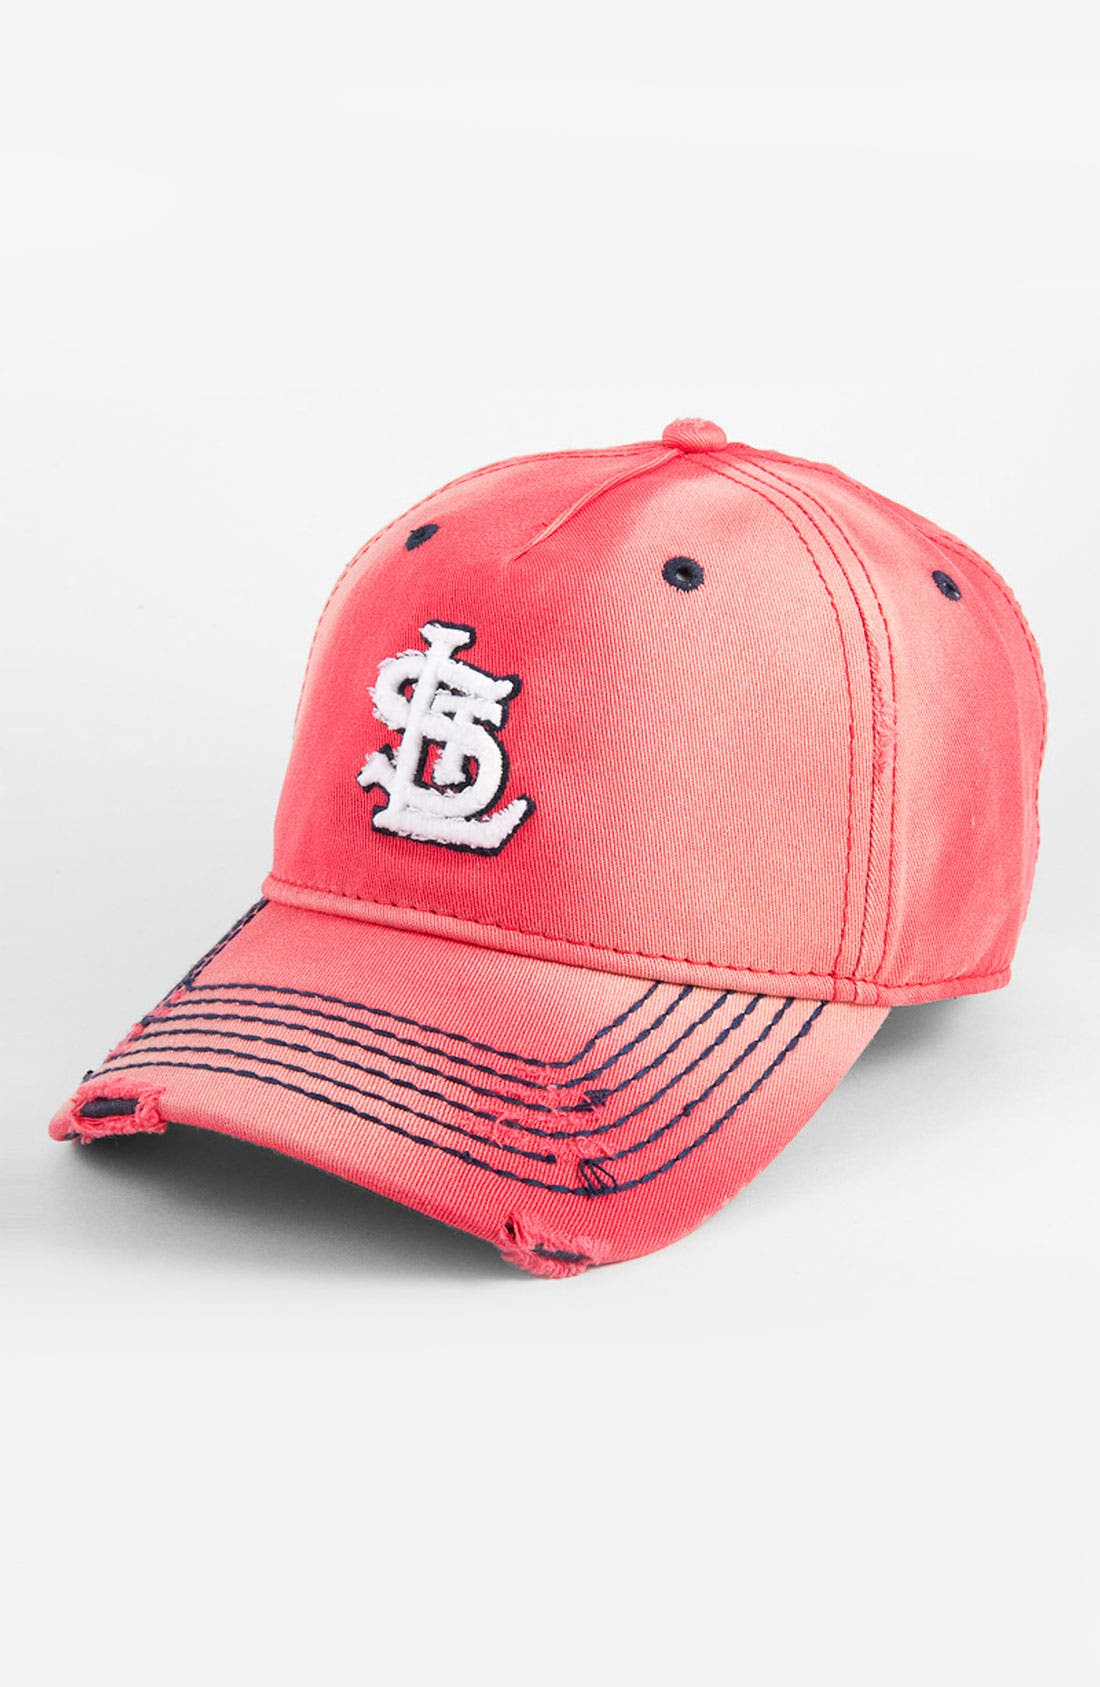 Main Image - American Needle 'Cardinals' Baseball Cap